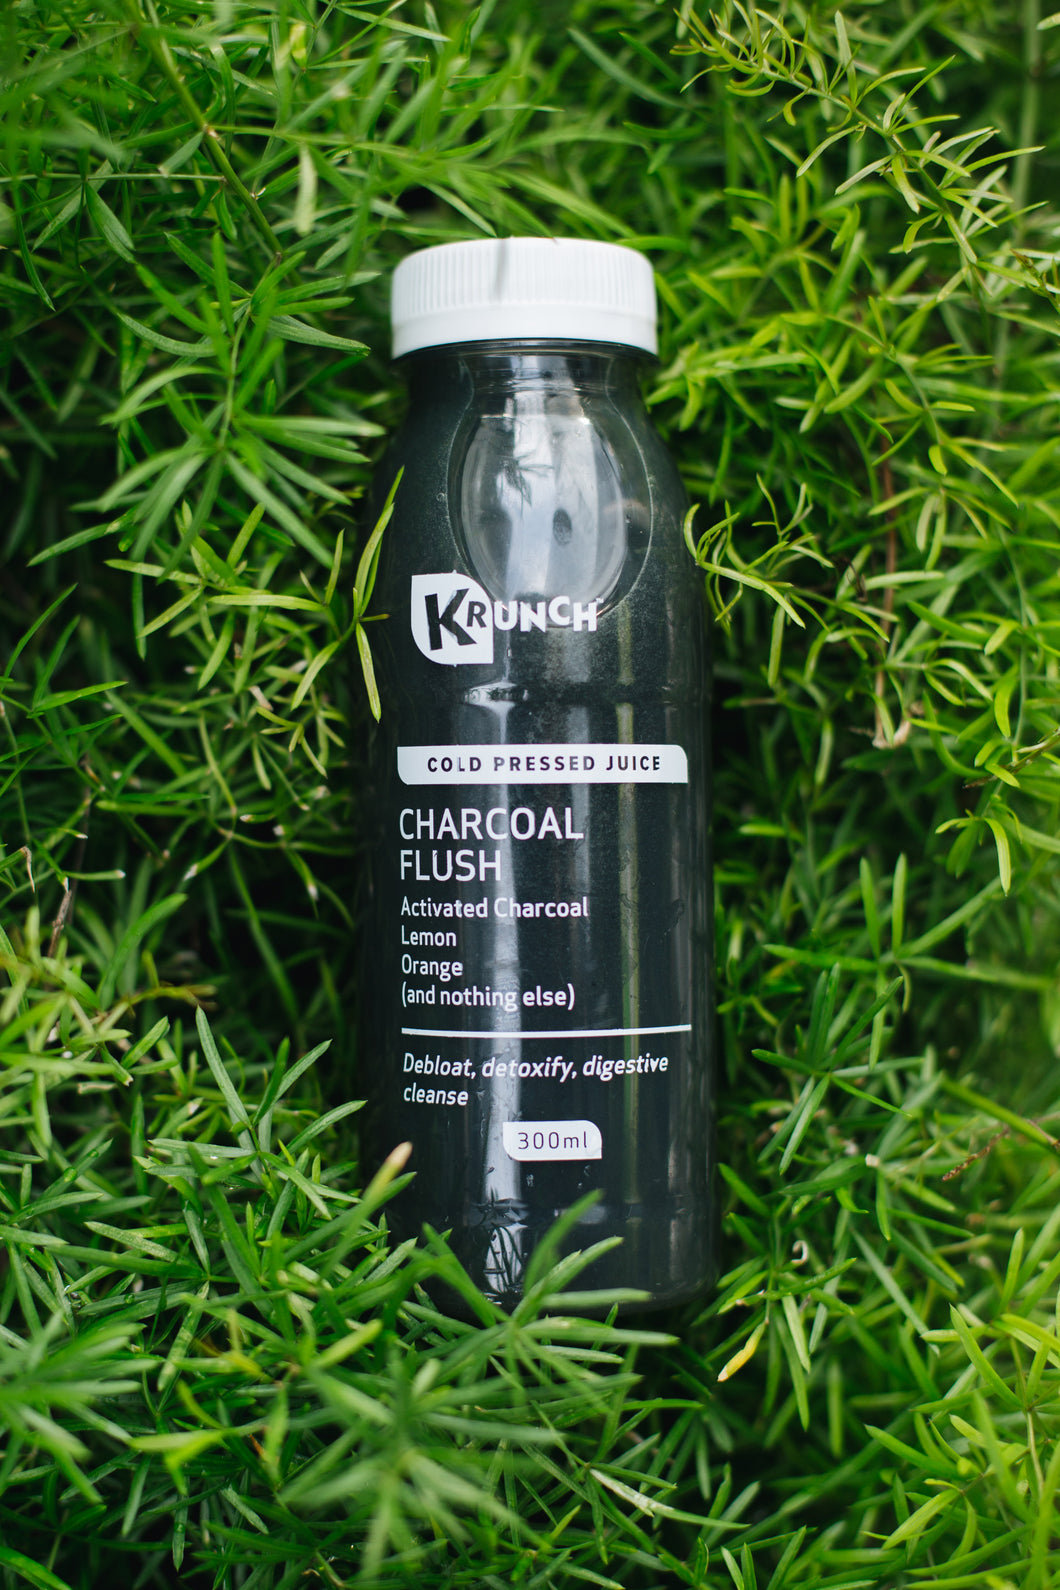 Charcoal Flush Cold Pressed Juice 300ml